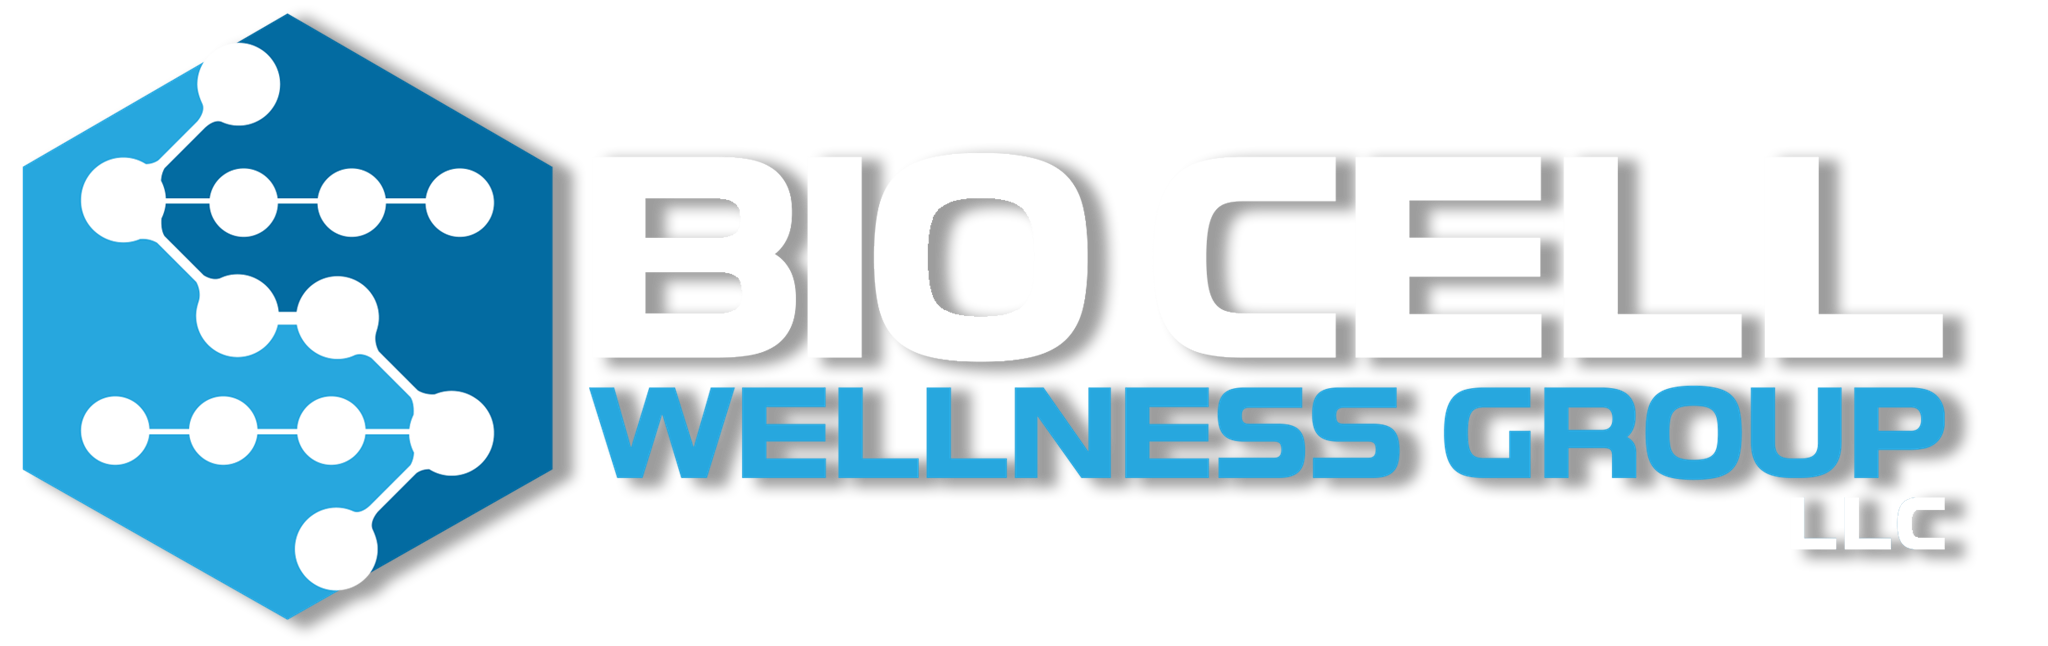 Biocell Wellness Group